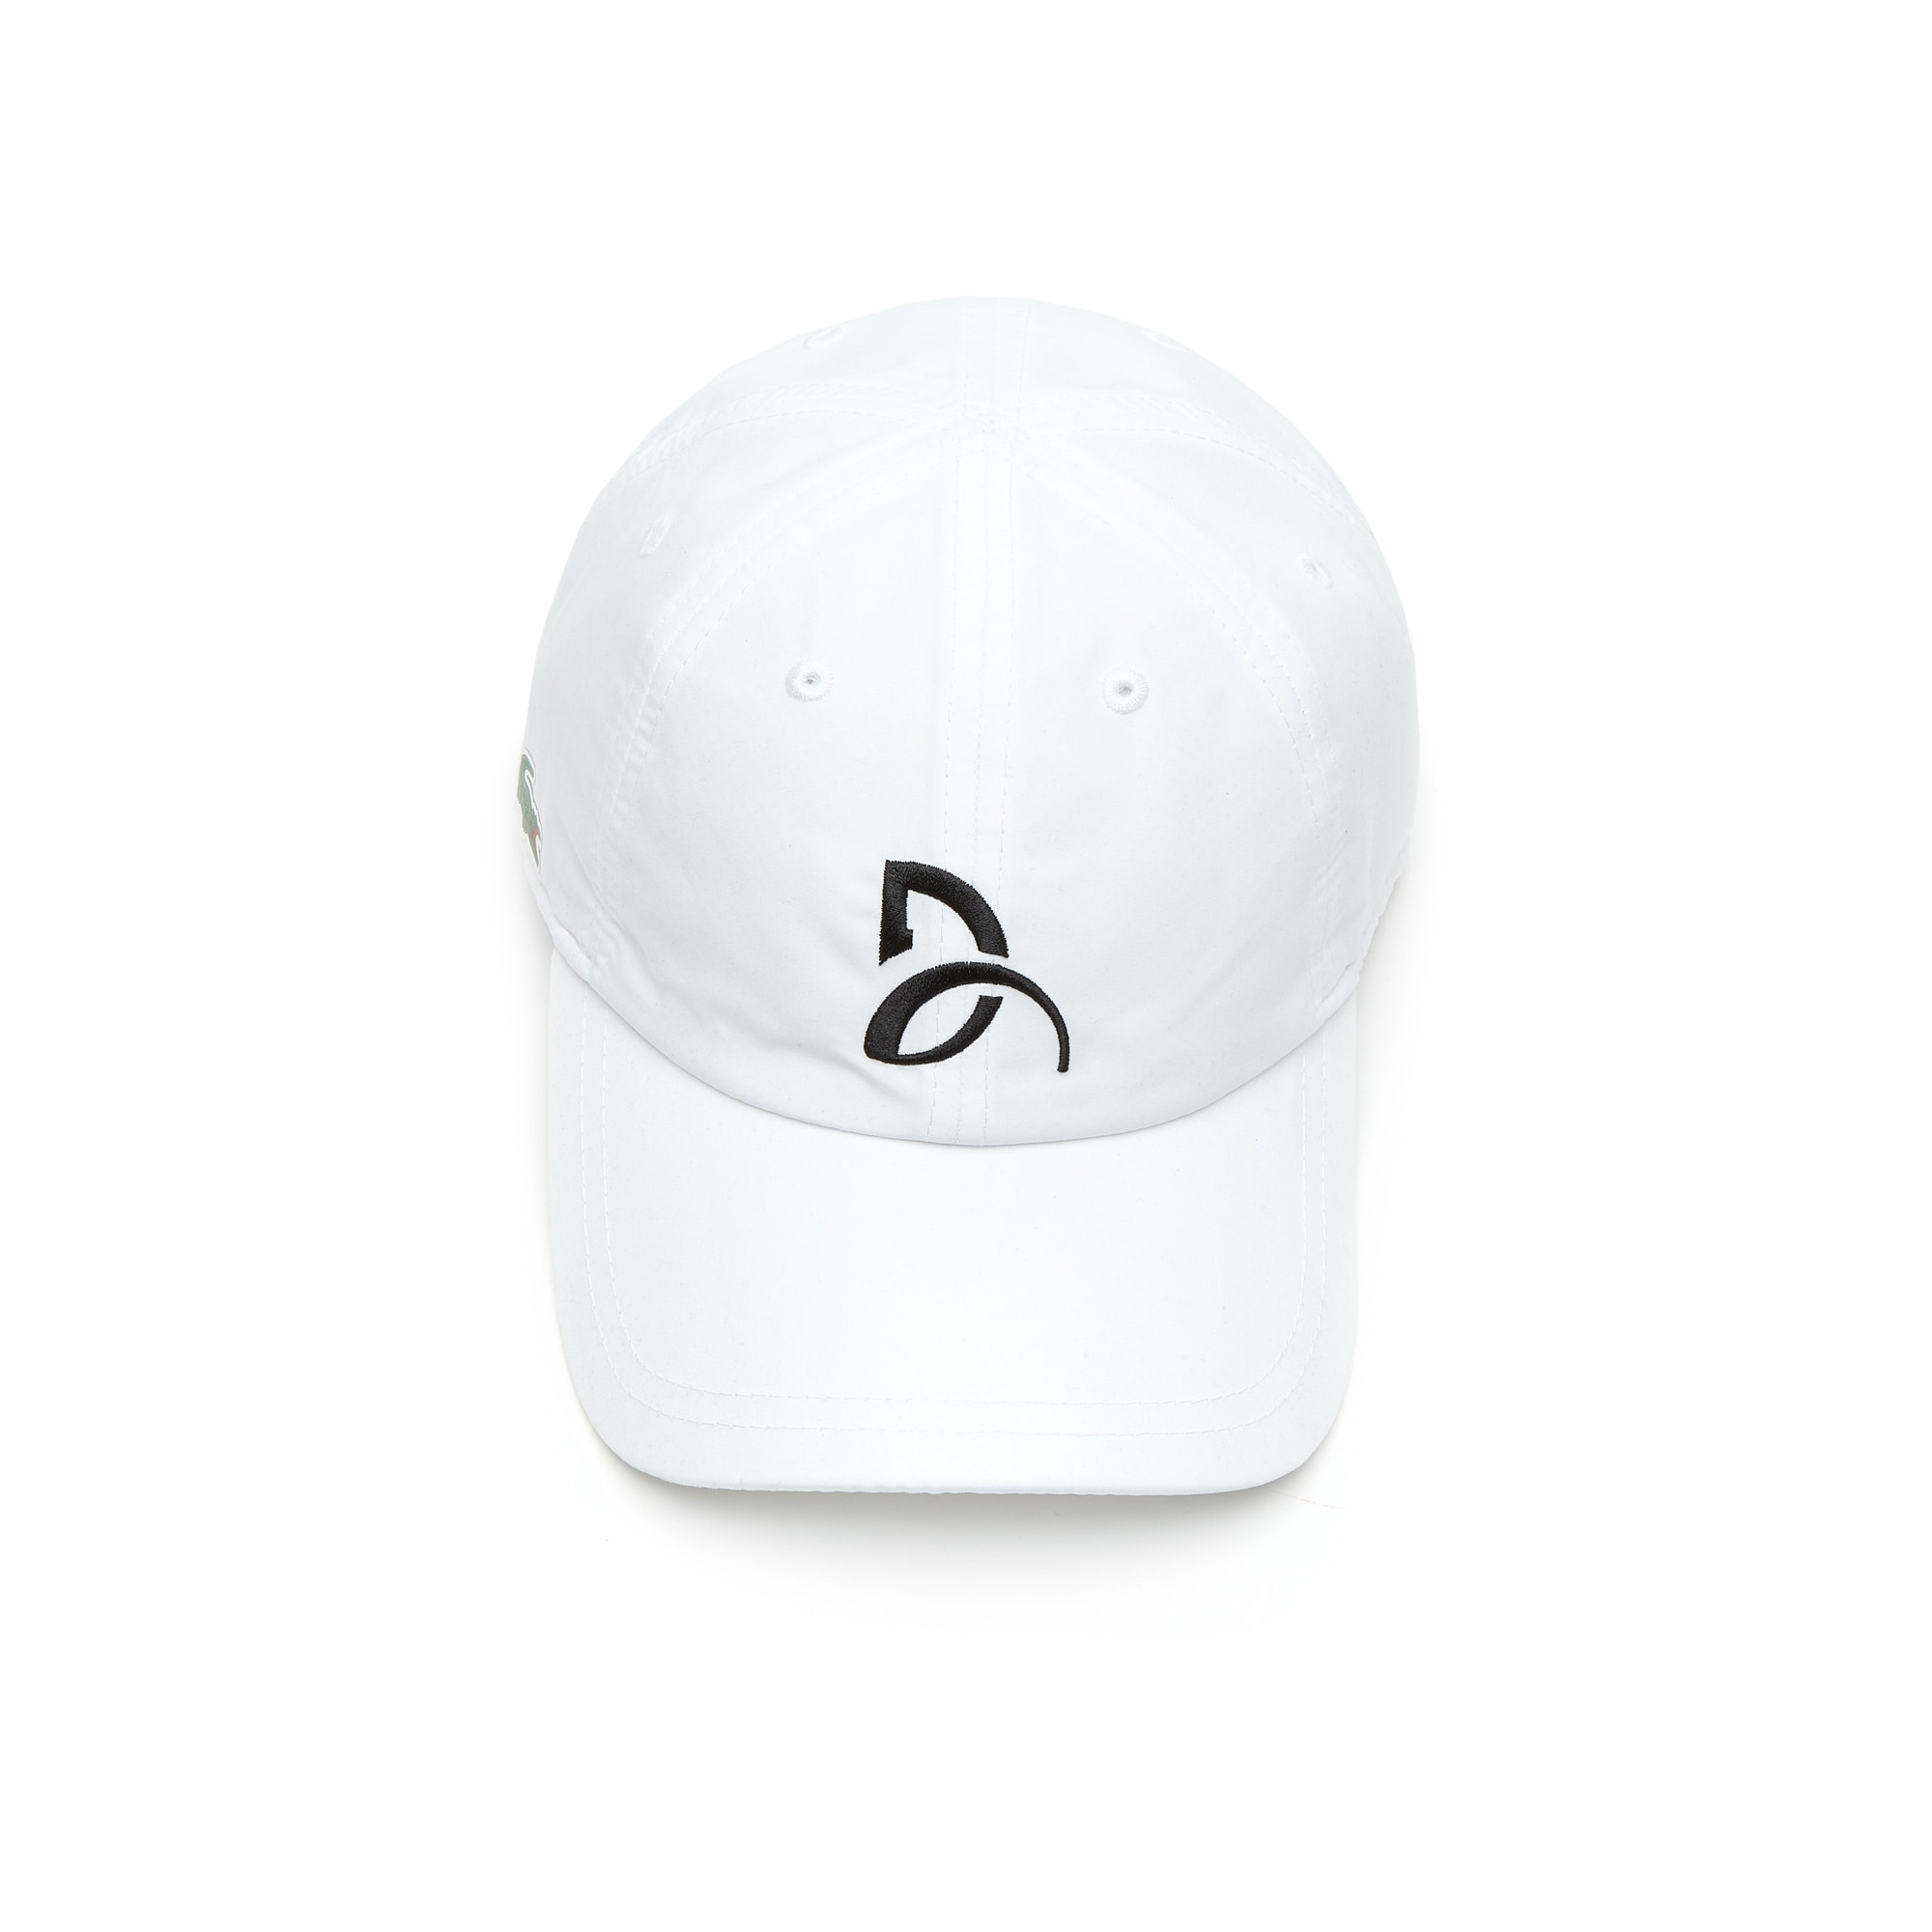 Men's Support With Style Collection for Novak Djokovic Tennis Cap